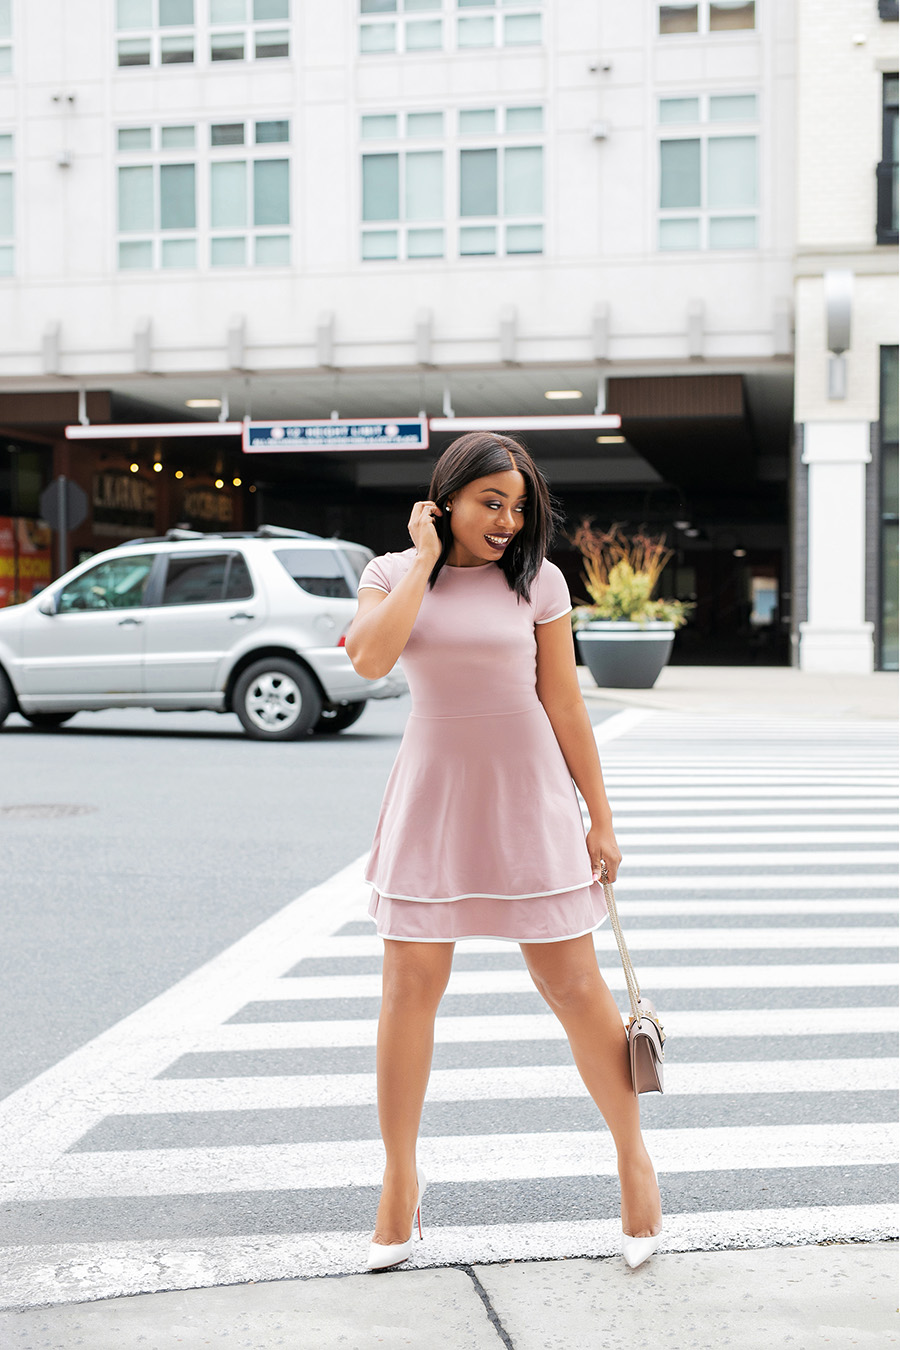 Stella-adewunmi-of-jadore-fashion-shares-what-to-wear-this-easter-weekend